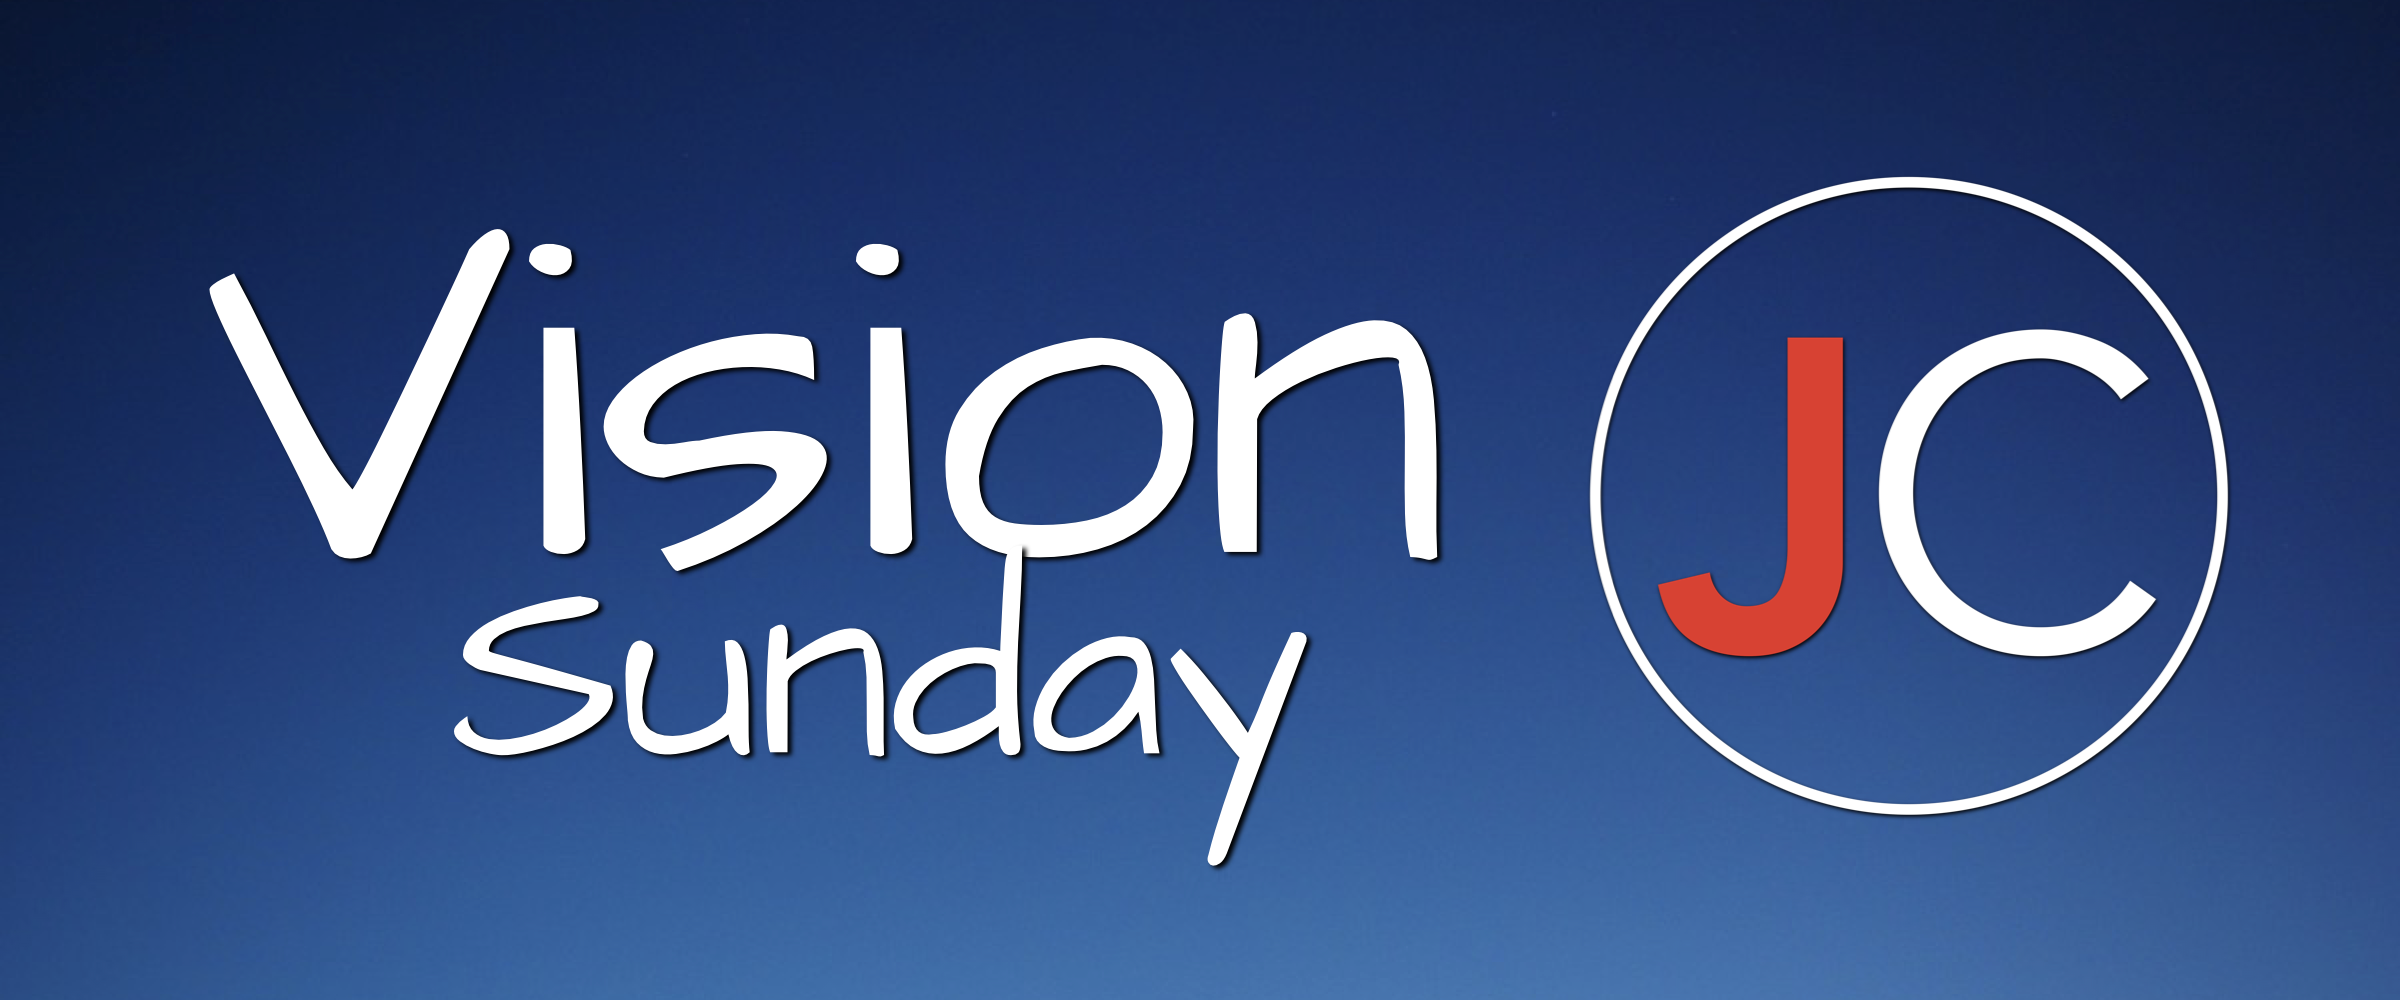 VISION SUNDAY (Event Thumbnail).001.png